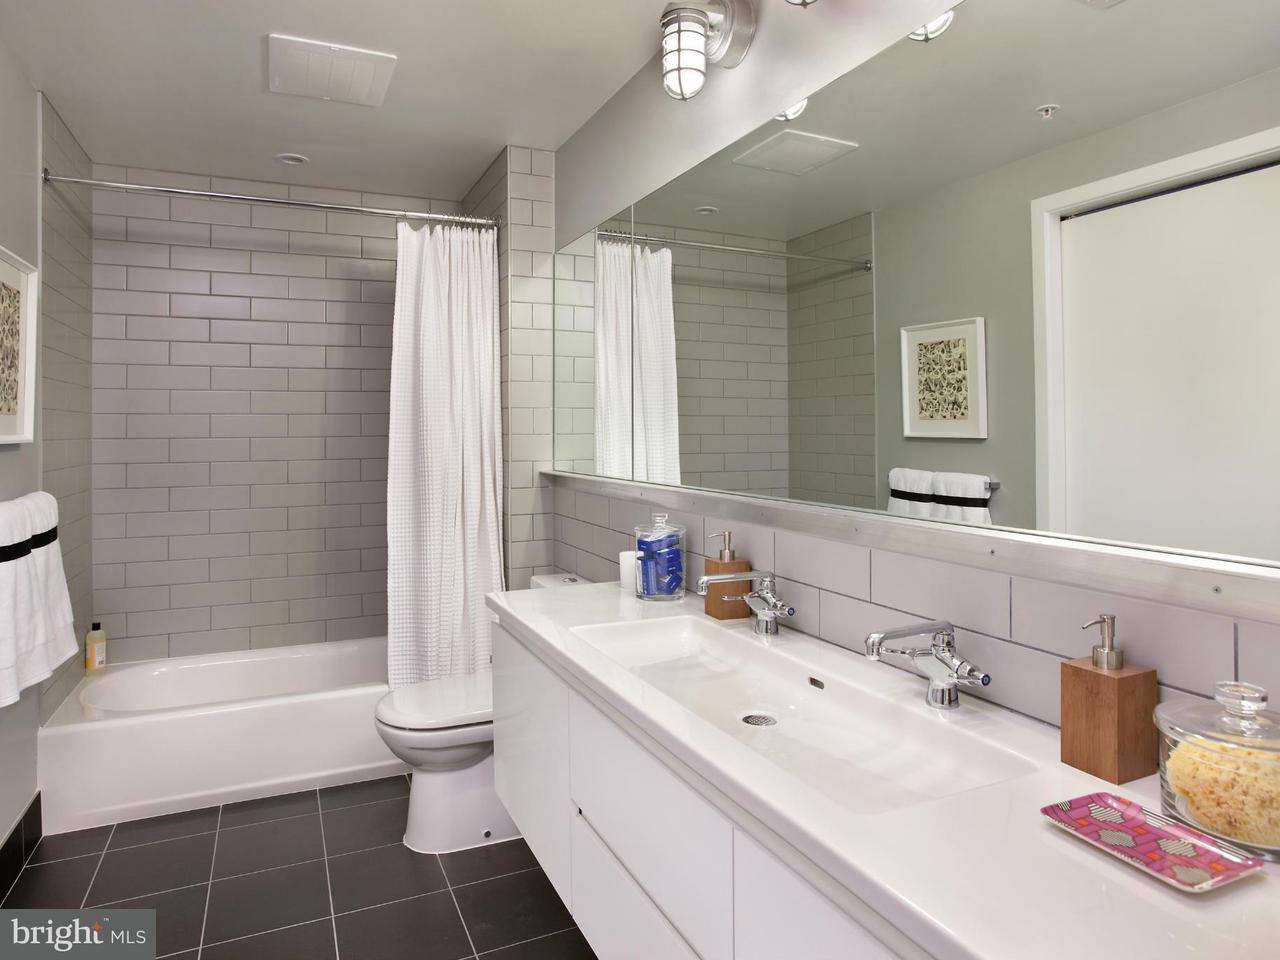 Additional photo for property listing at 2112 8th St NW #1001  Washington, District Of Columbia 20001 United States